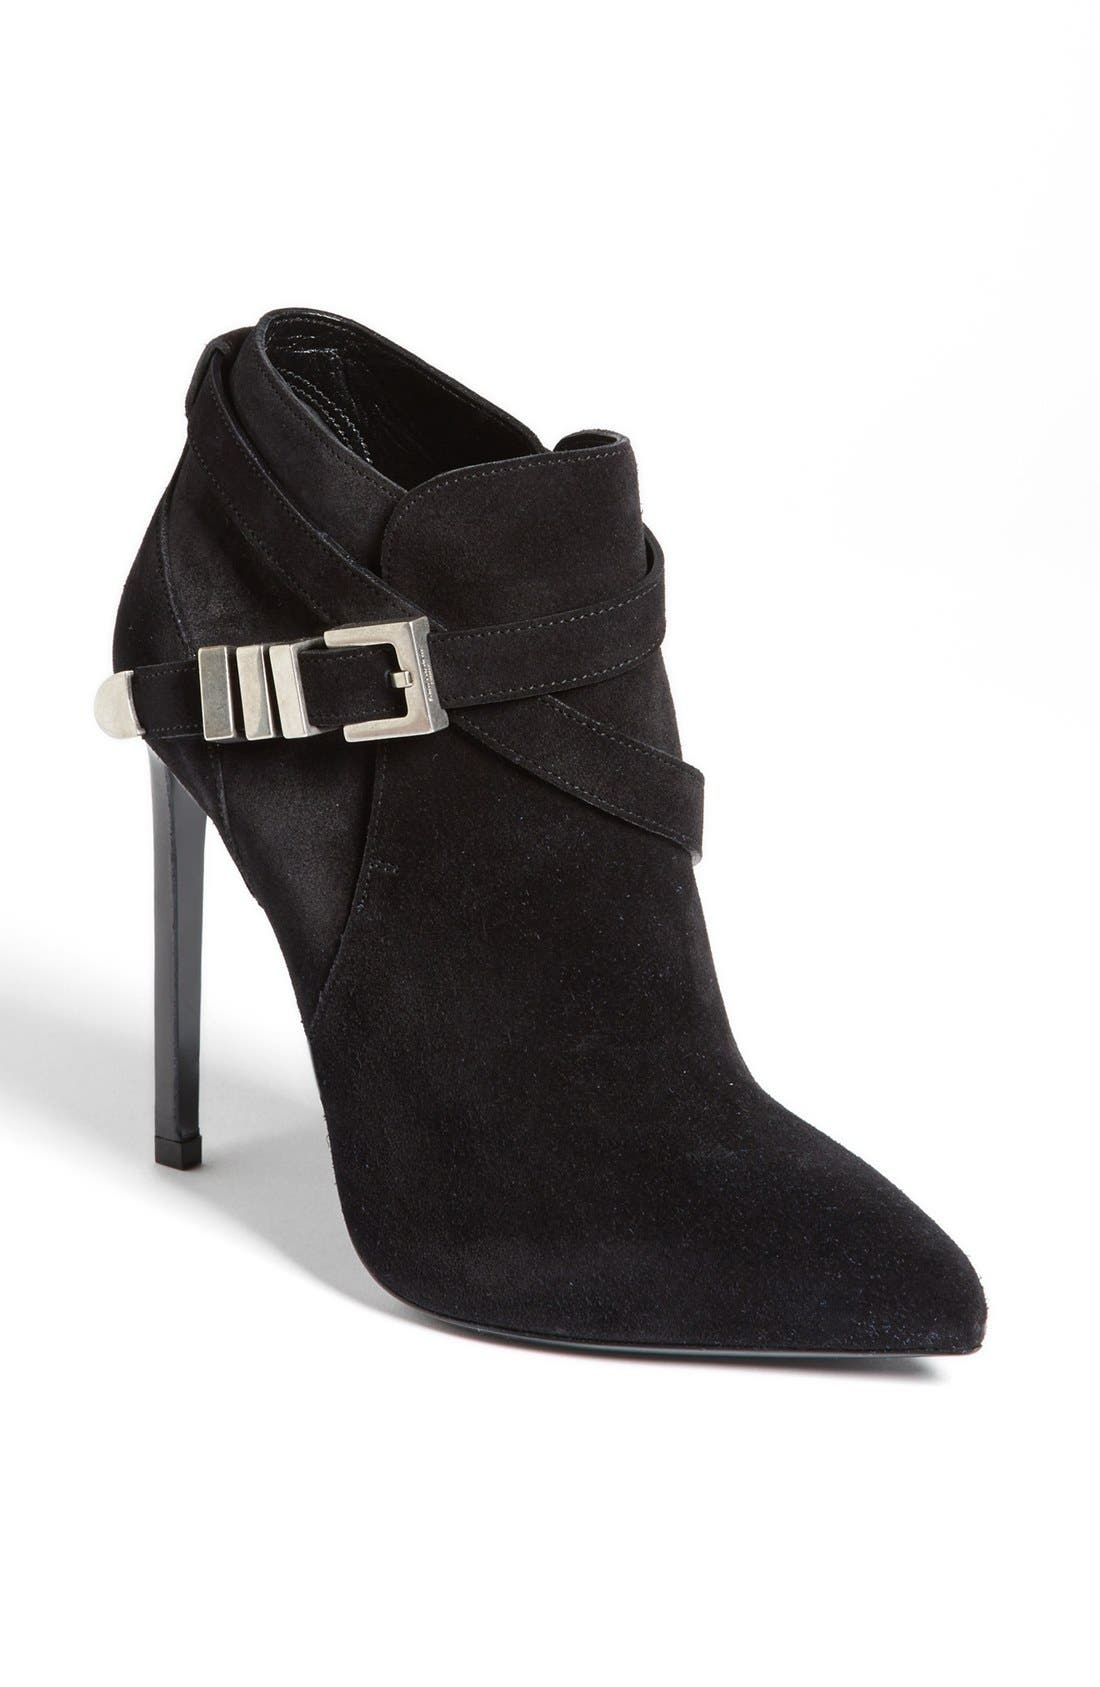 SAINT LAURENT 'Paris' Buckle Bootie, Main, color, 001